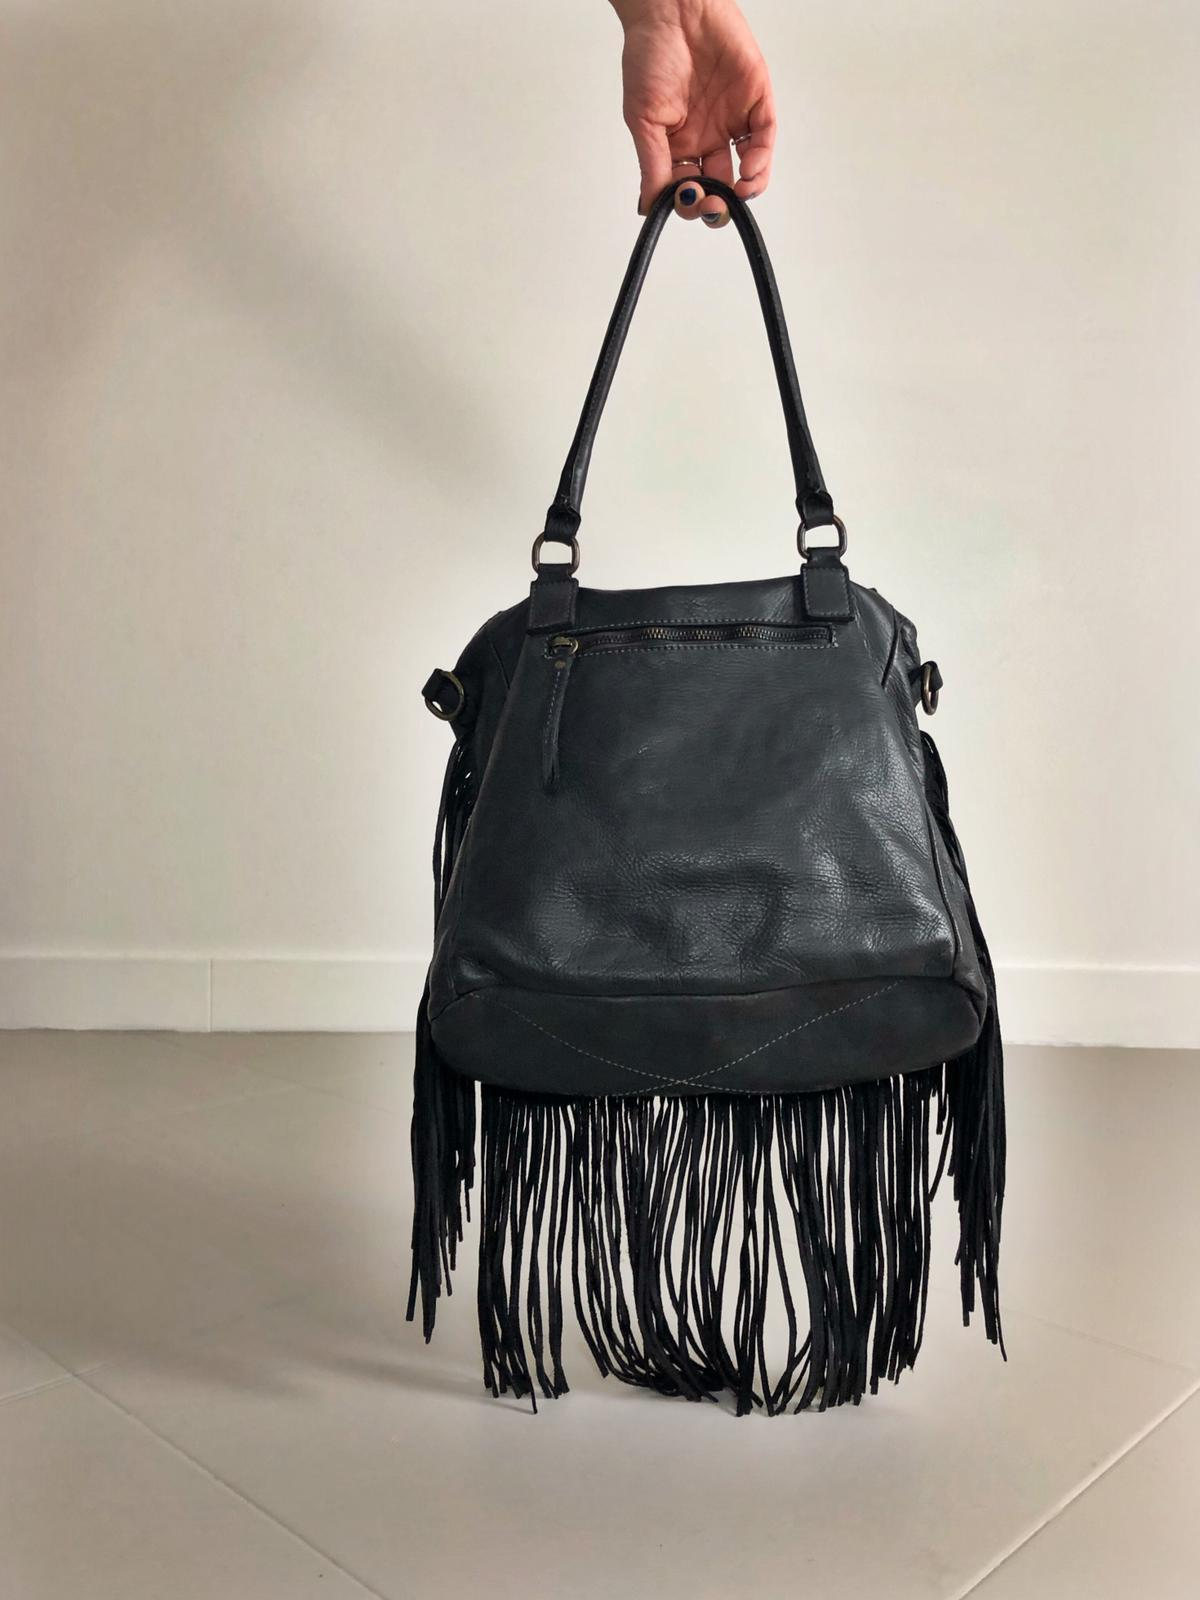 FRINGE BAG handamde leather bag  image 5